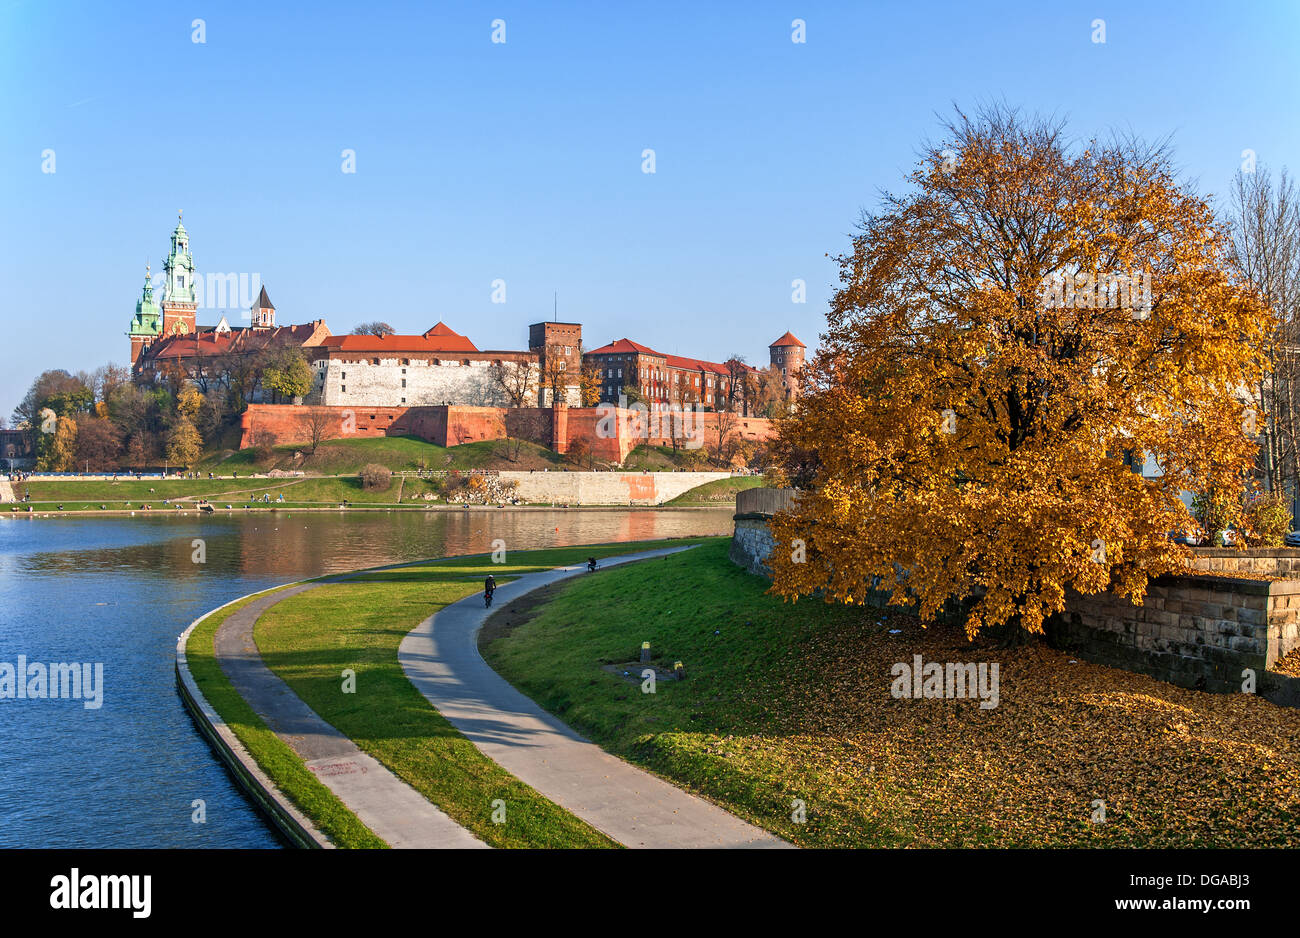 Royal Wawel castle, Vistula river bend, promenades and an autumn tree at sunset in Krakow, Poland - Stock Image